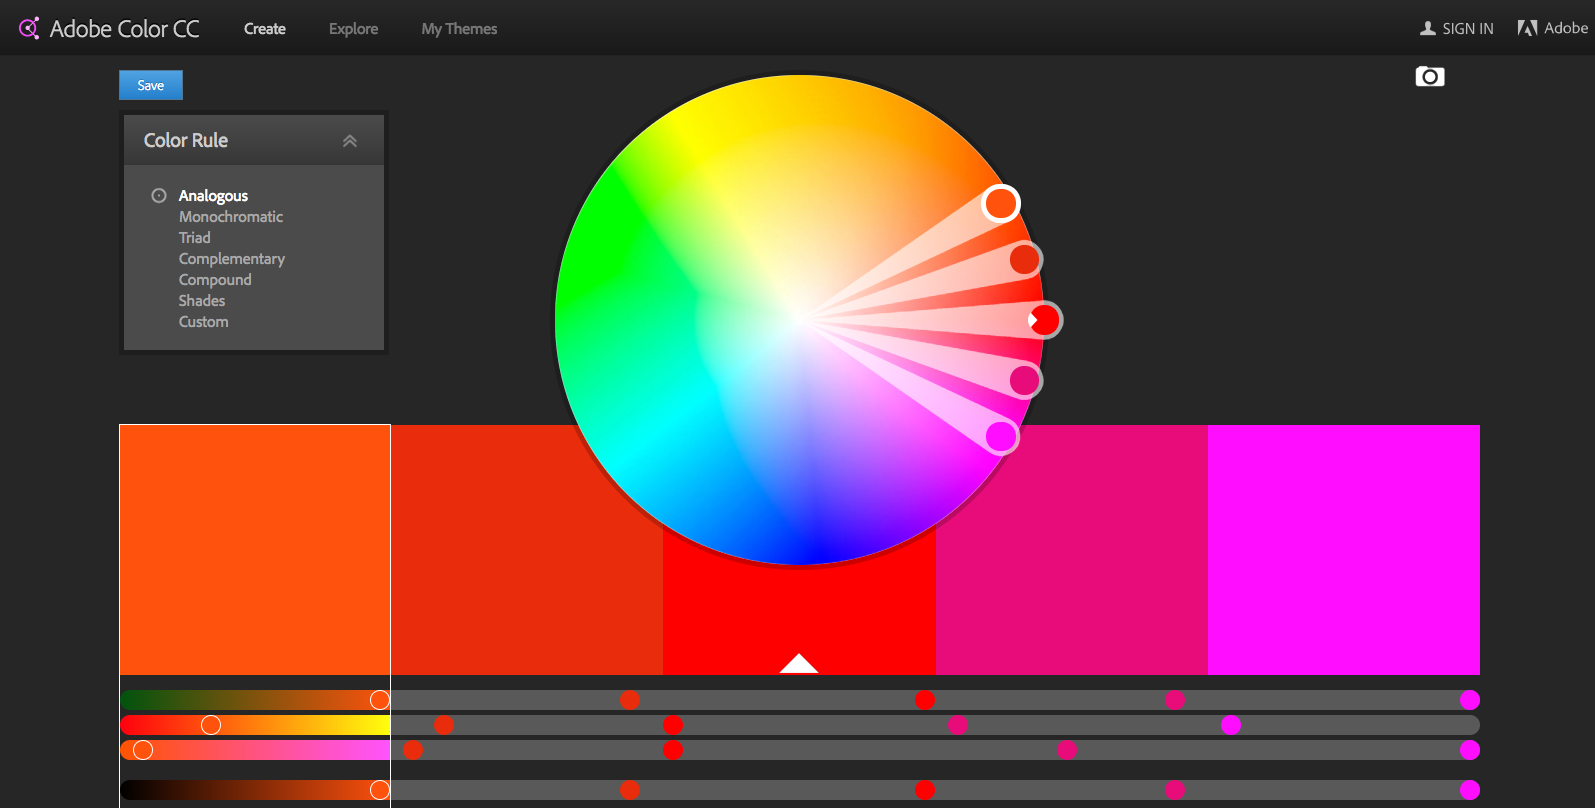 Game color theory - 7 Adobe Color Cc Color Wheel